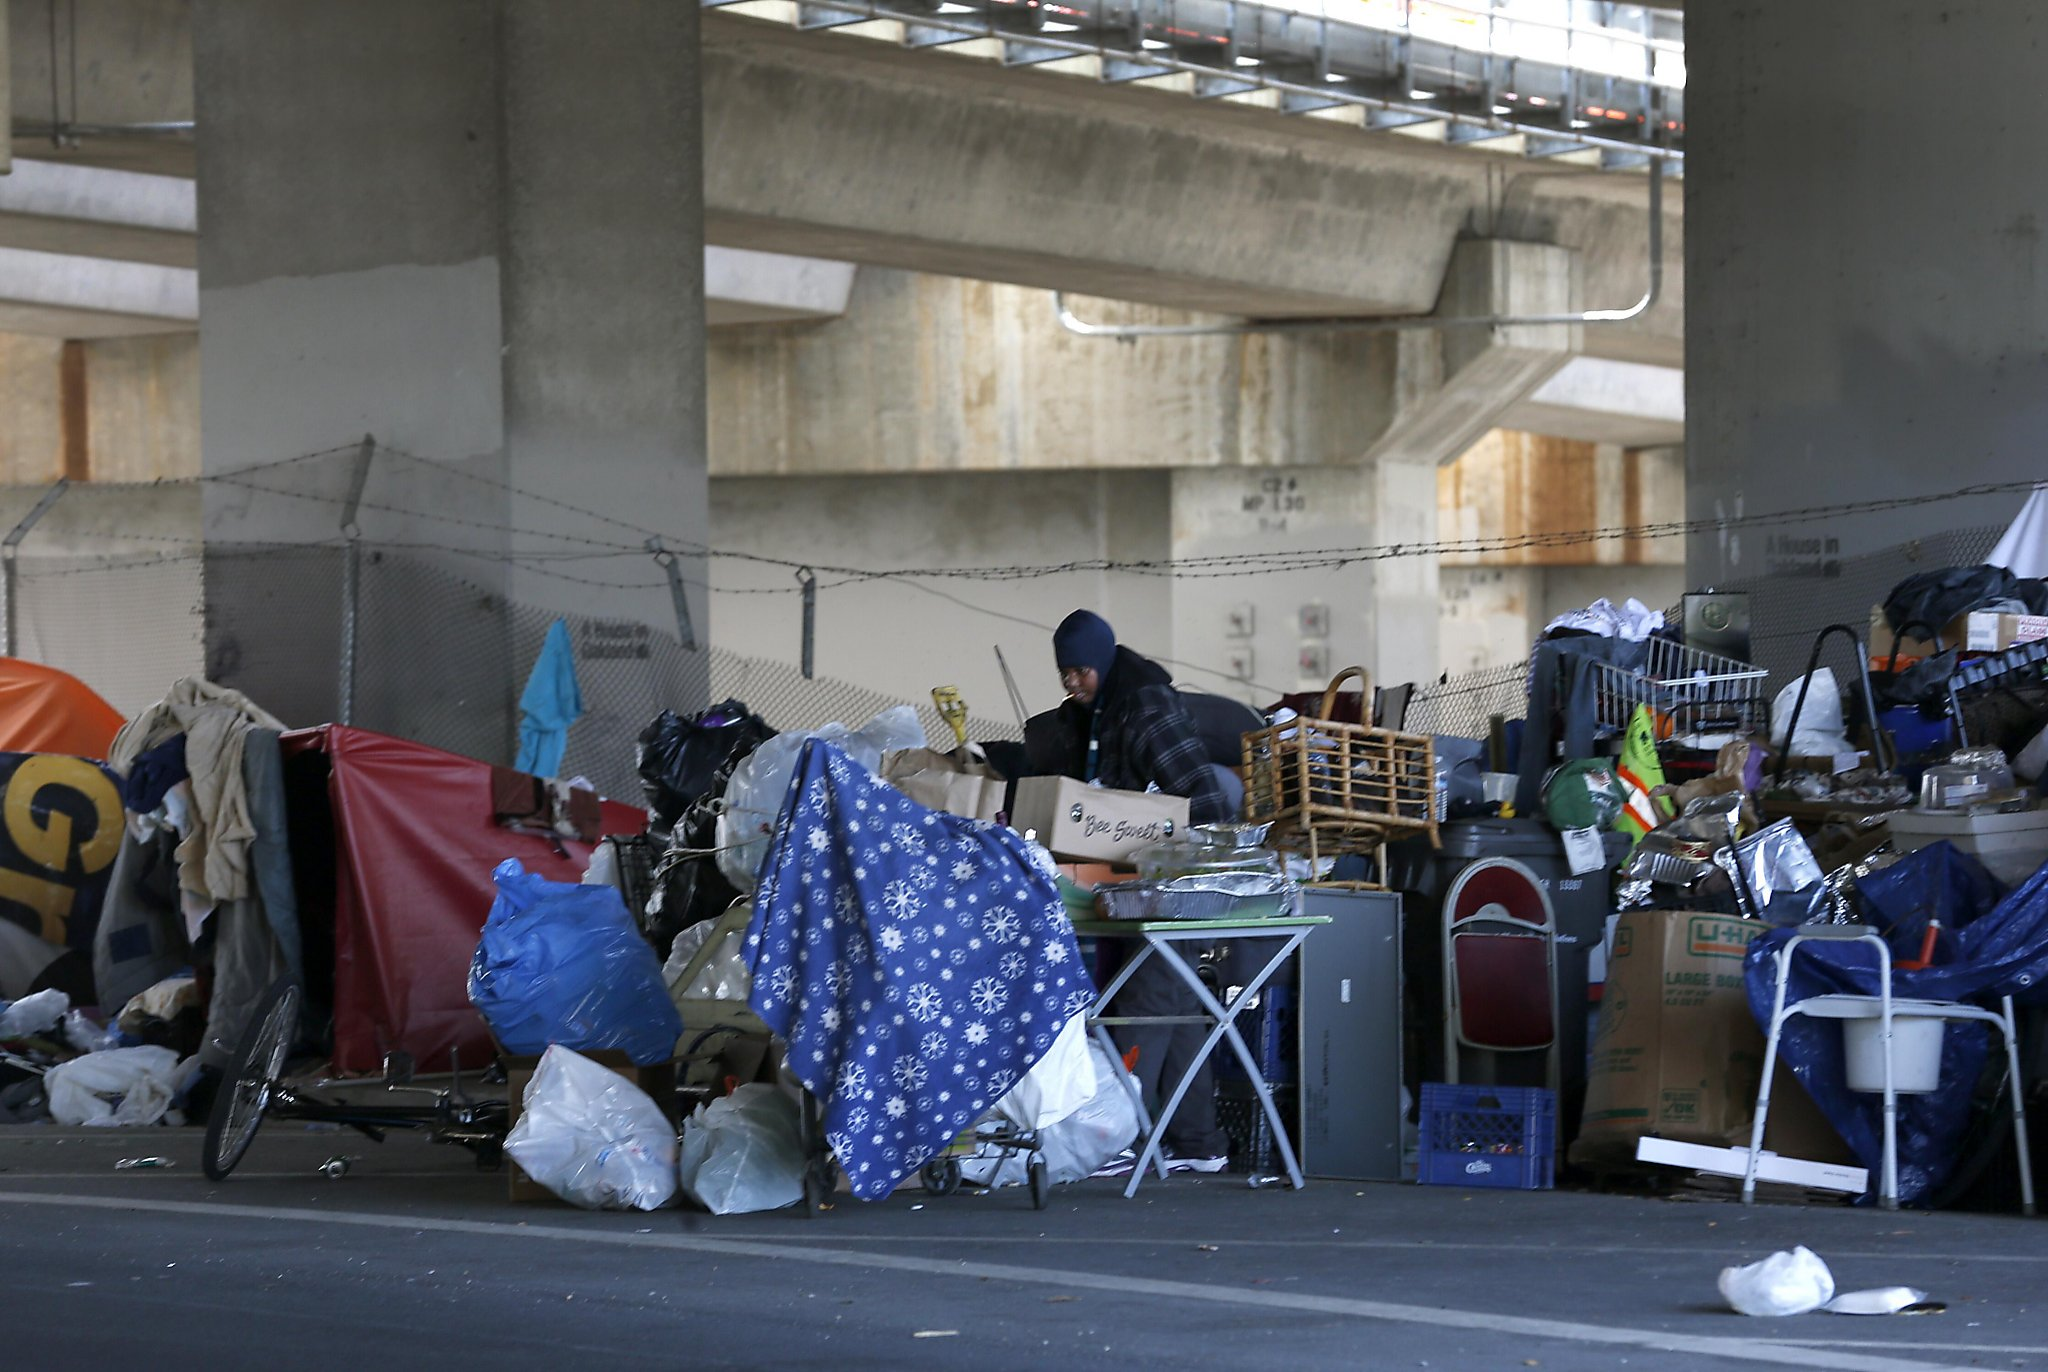 City-sanctioned homeless c&ground coming to Oakland - San Francisco Chronicle & City-sanctioned homeless campground coming to Oakland - San ...